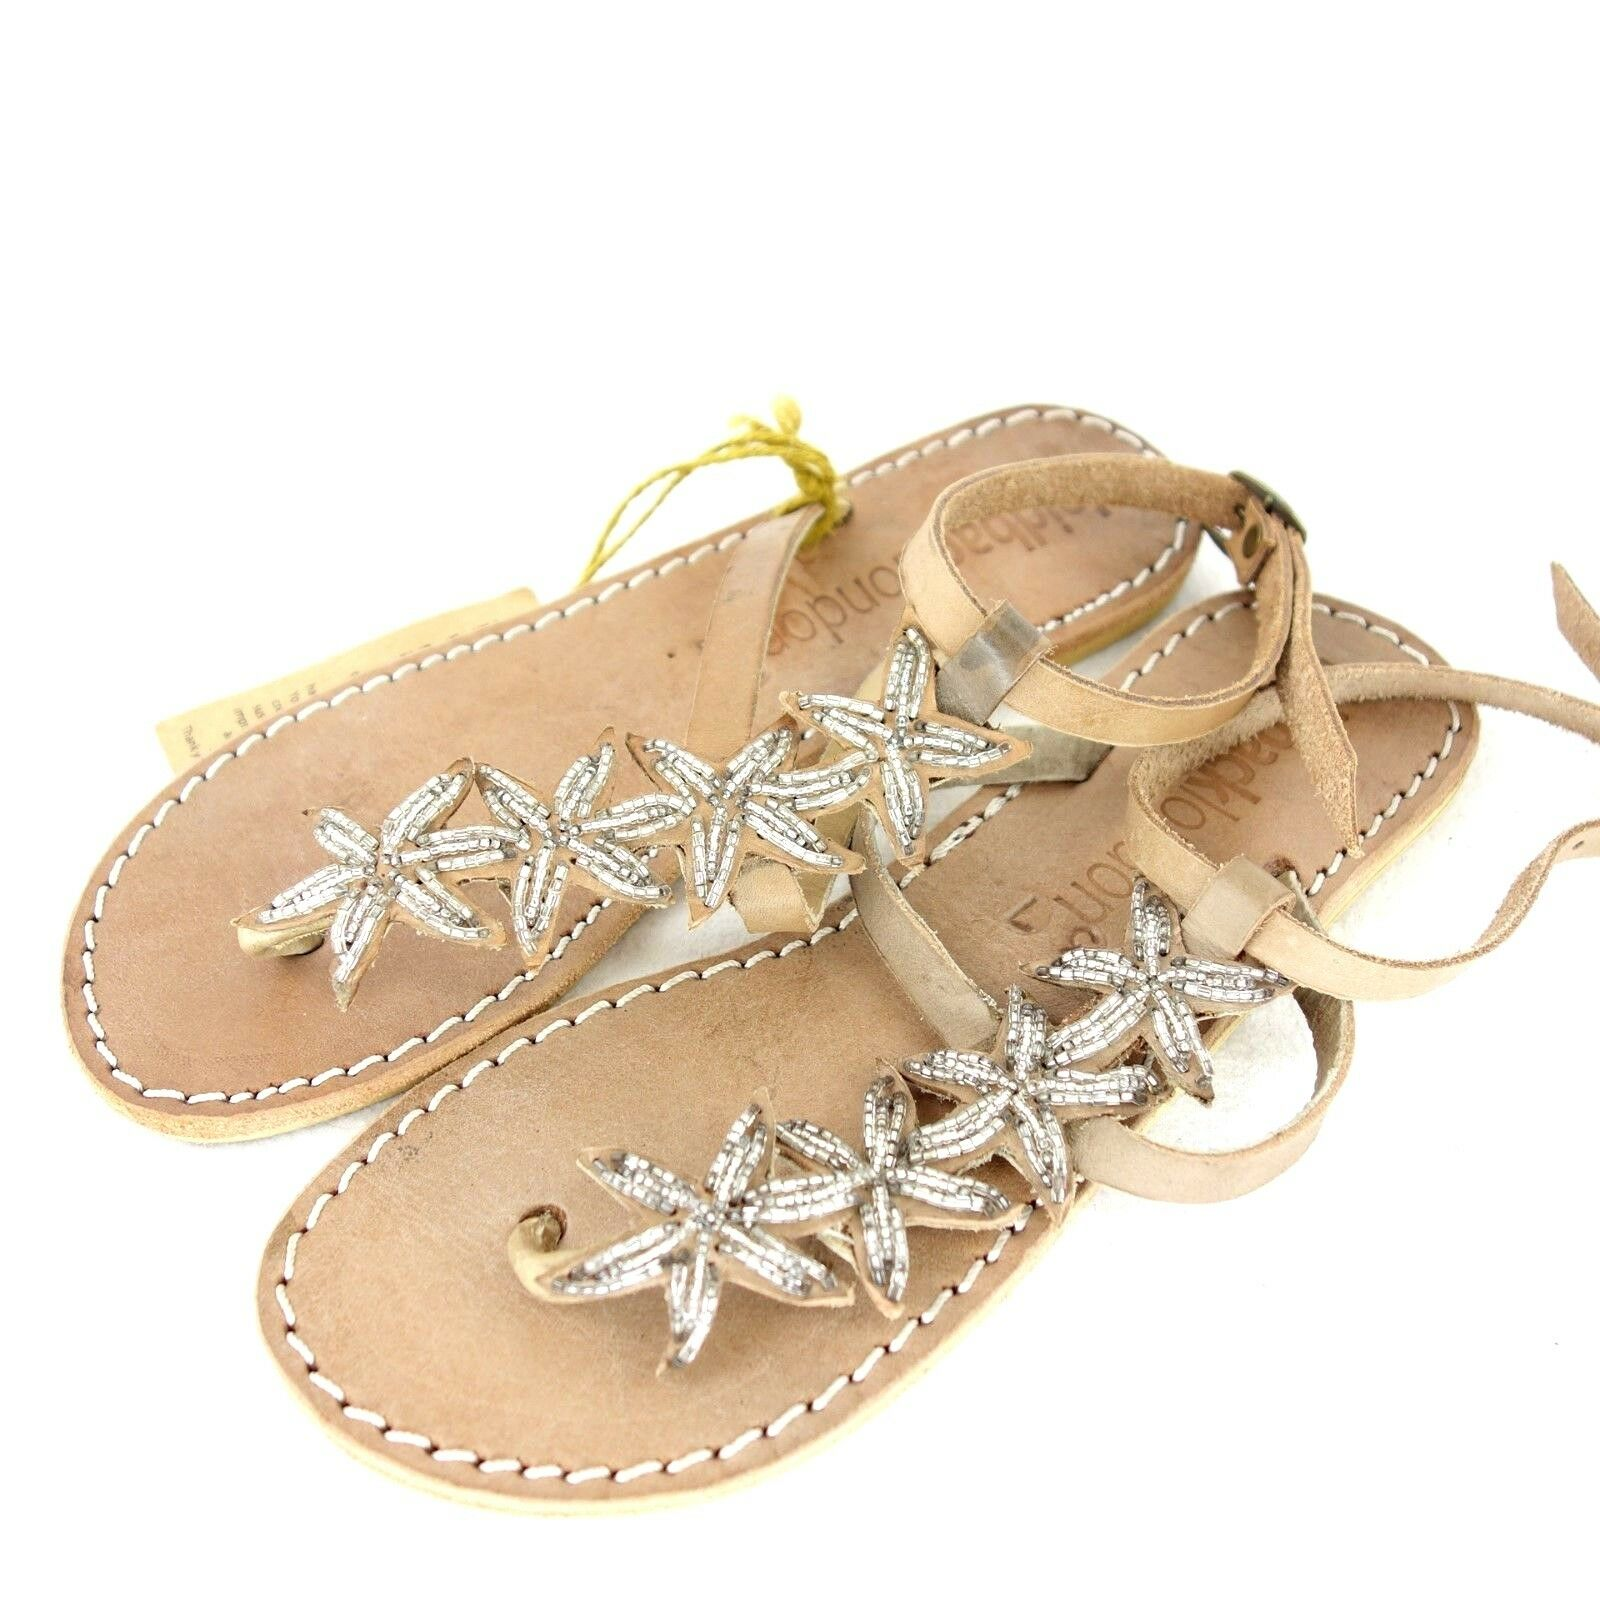 Laidback London Womens Sandals Toe Separator shoes 36 37 Leather Star NEW 69 NP